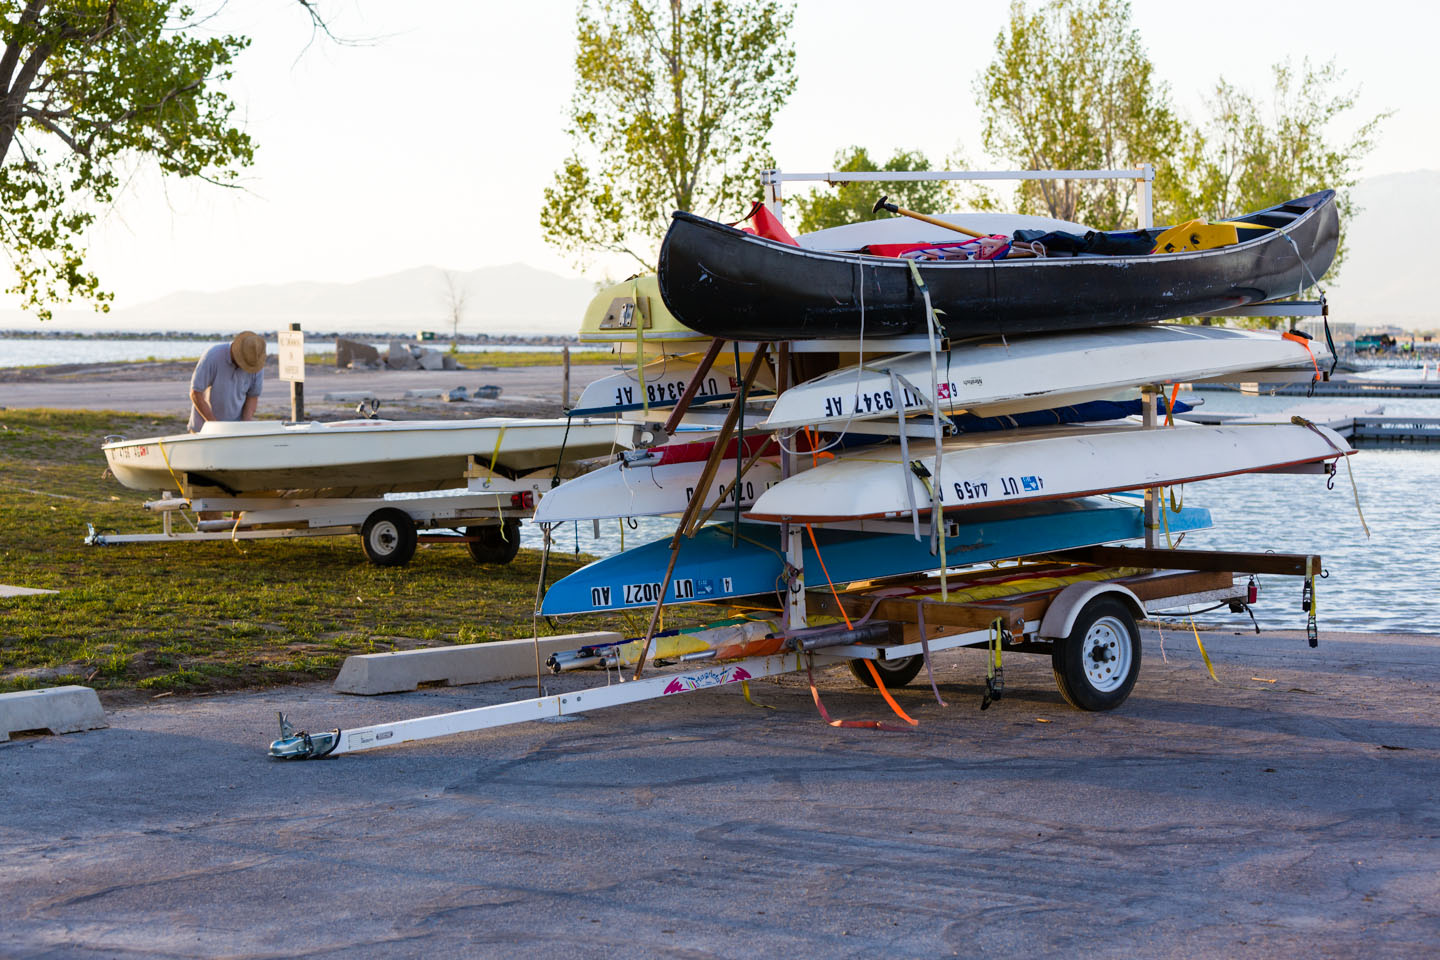 An armada of sailboats packed for travel